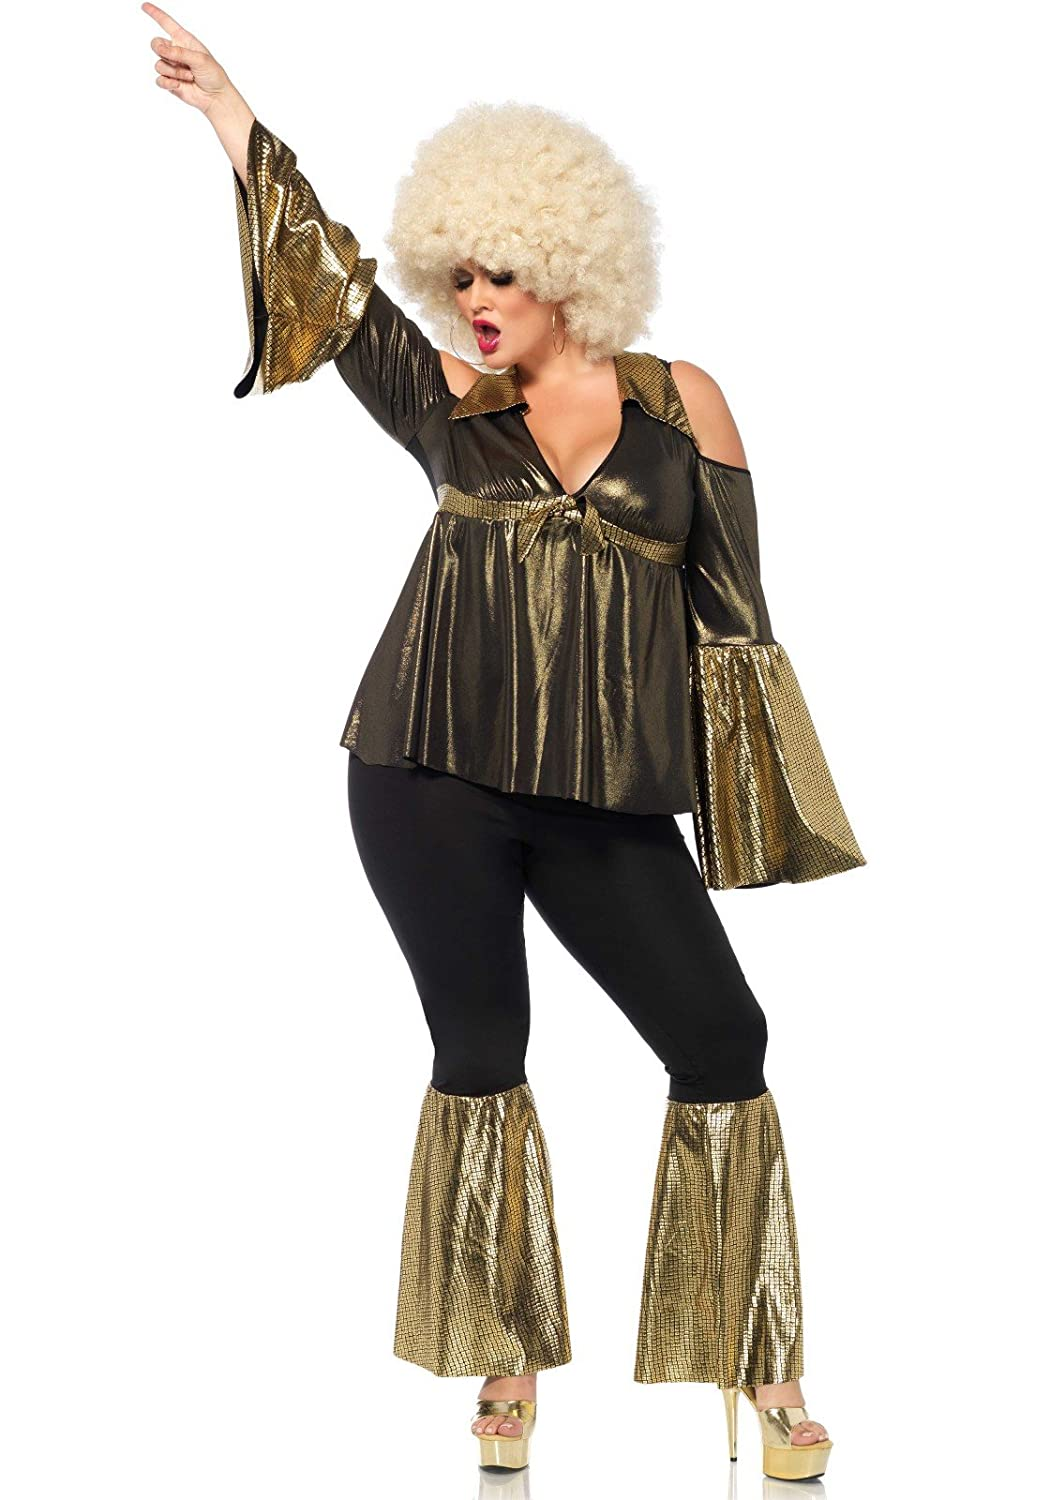 Download image 1700s woman portrait pc android iphone and ipad - Leg Avenue Women S Plus Size Disco Diva Costume